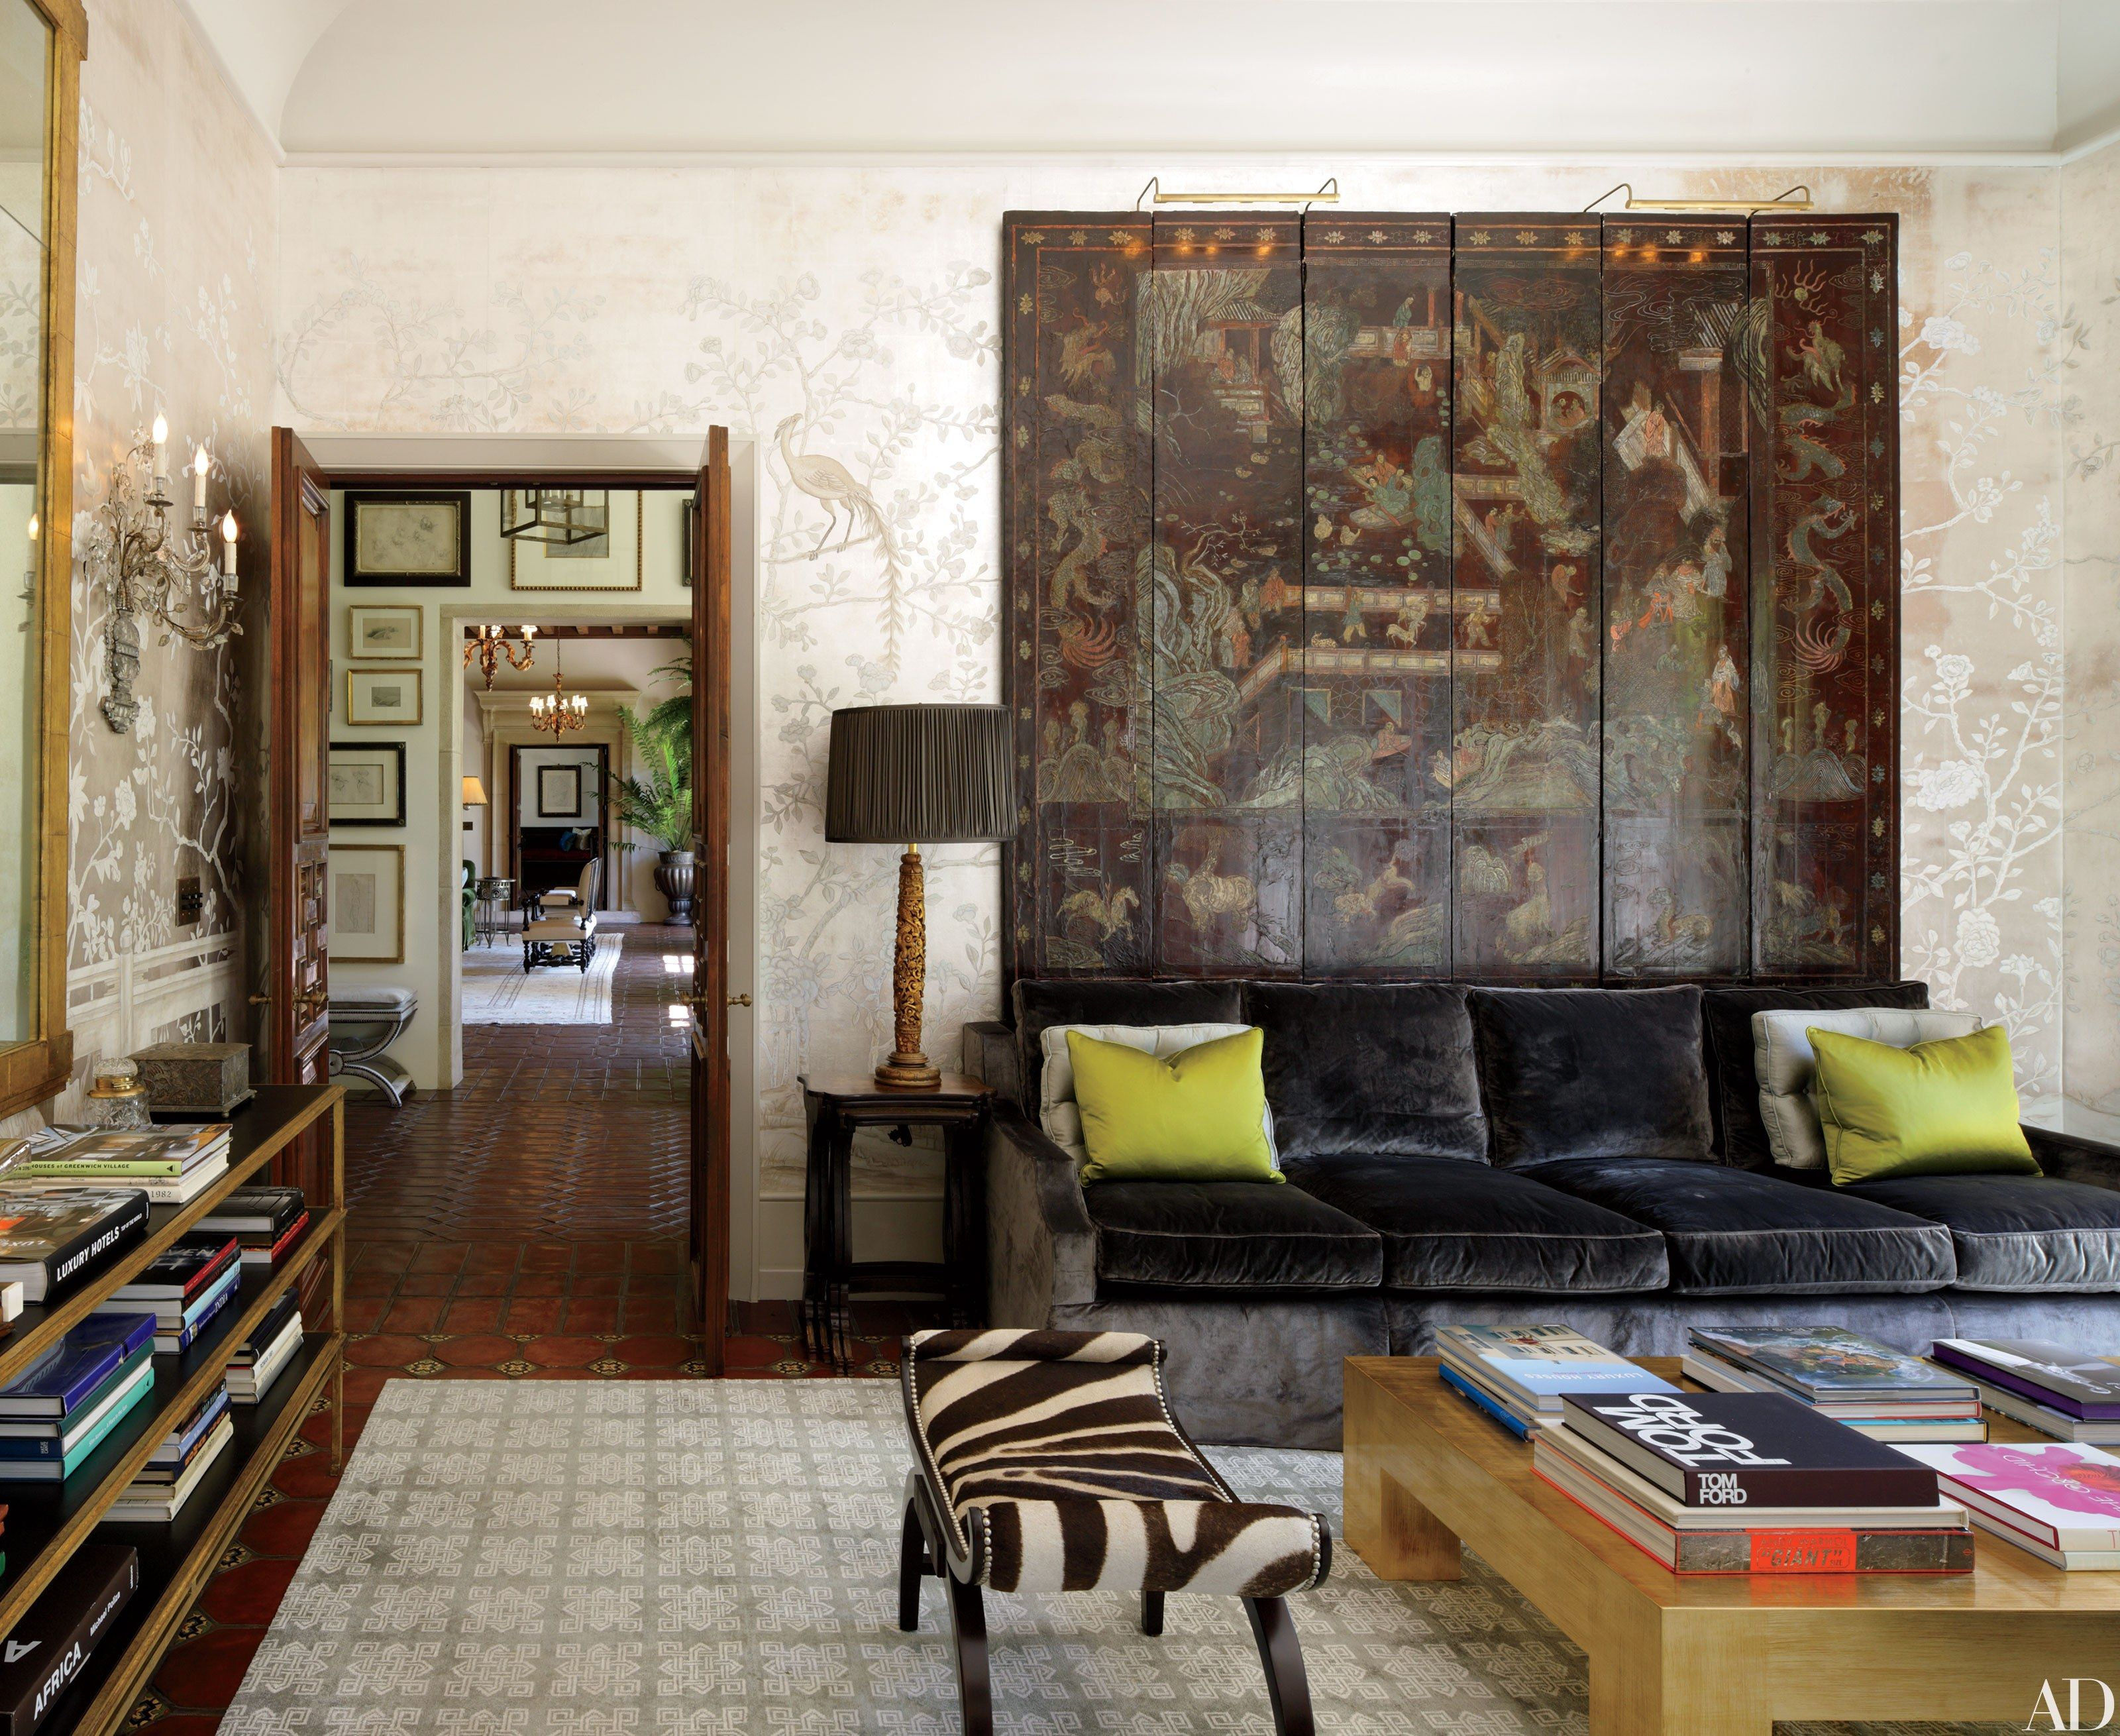 In the garden room of a Los Angeles home renovated by architect Marc Appleton and designer Windsor Smith, a 19th-century Chinese lacquer screen is displayed against silvered wallpaper with hand-painted additions in gouache by Scott Waterman. Furnishings include a Moderne gilded console table with leather shelves by Richard Shapiro Studiolo, a zebra-print stool from Paul Marra Design, and a Parsons-style low table from Eccola.